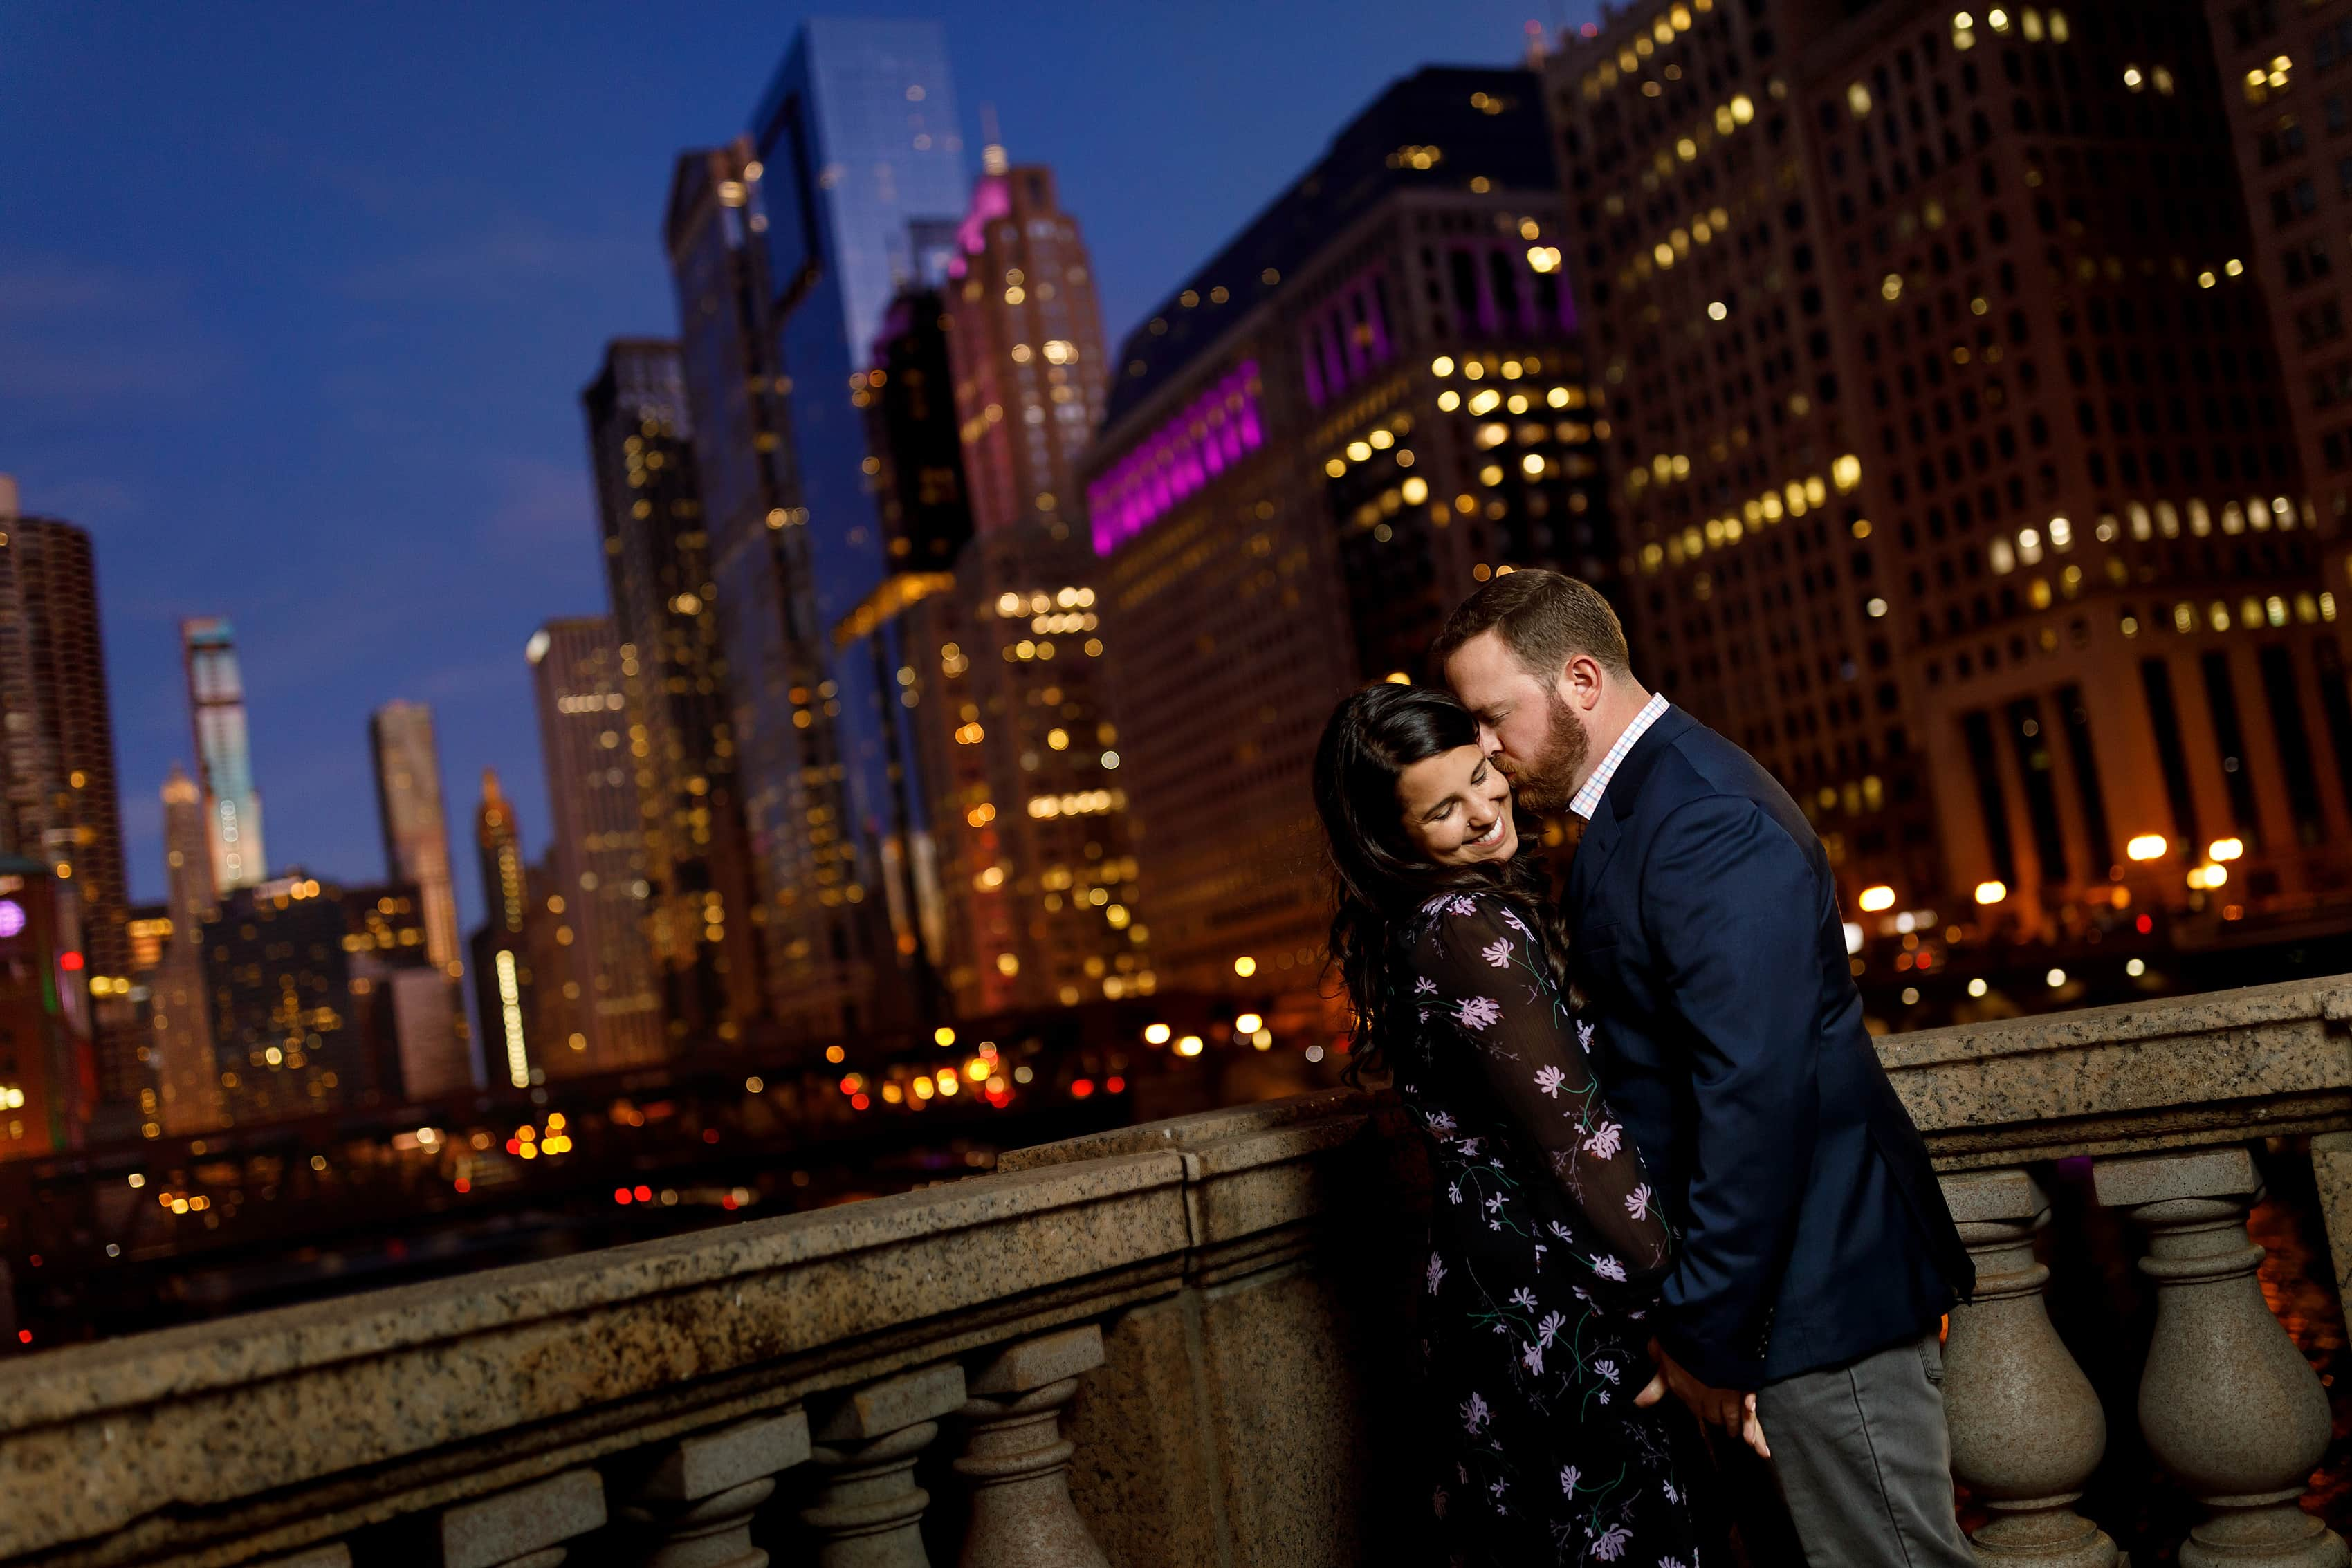 groom gives bride a kiss on the cheek during downtown Chicago engagement session on the river with skyline in the background during twilight blue hour